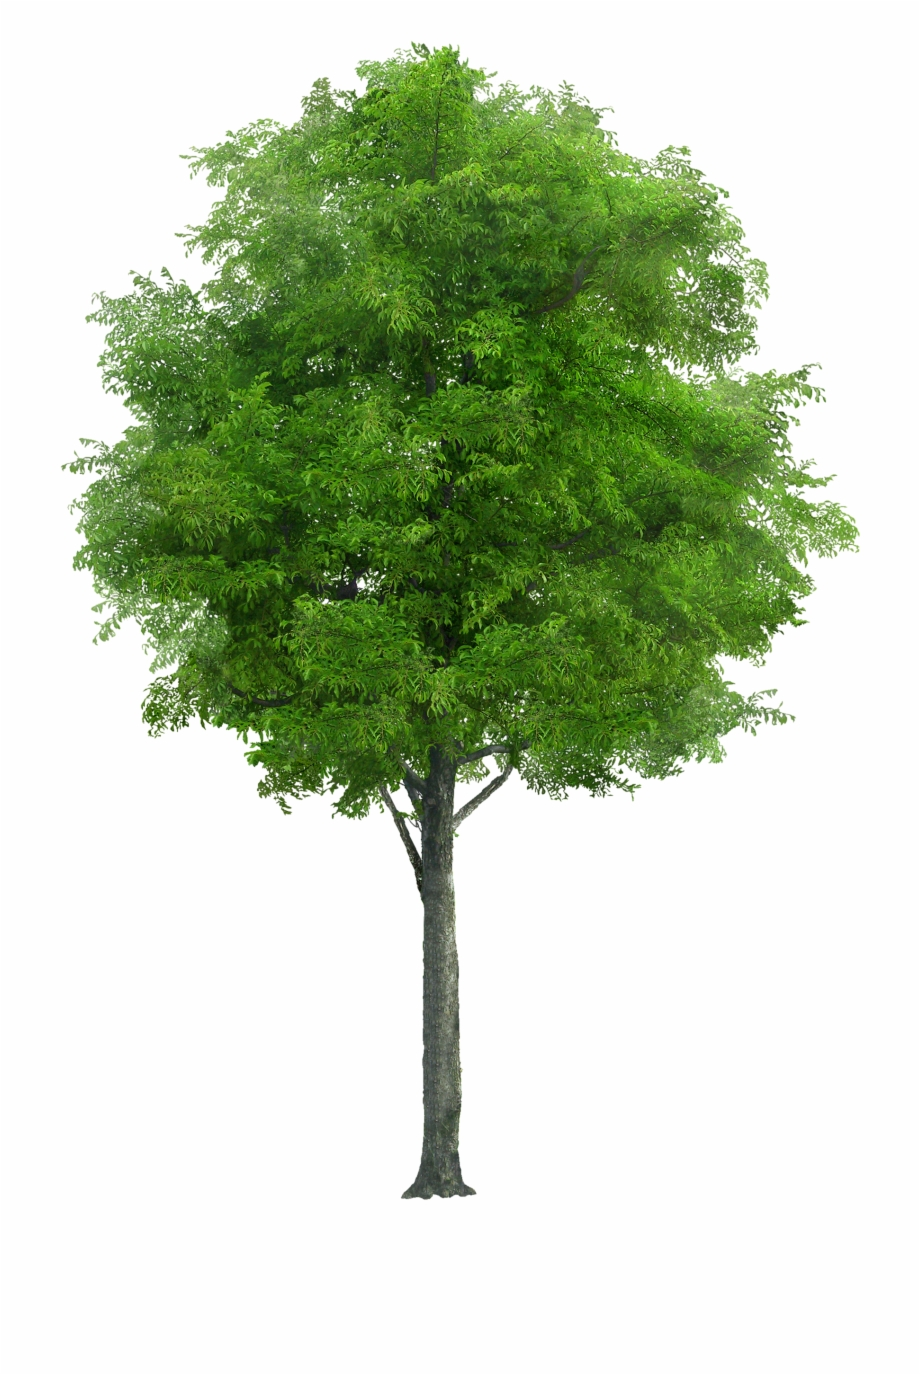 Tree Png Image Tree Plan Png Tree Render Tree Psd Tree Png Transparent Png Download 367058 Vippng